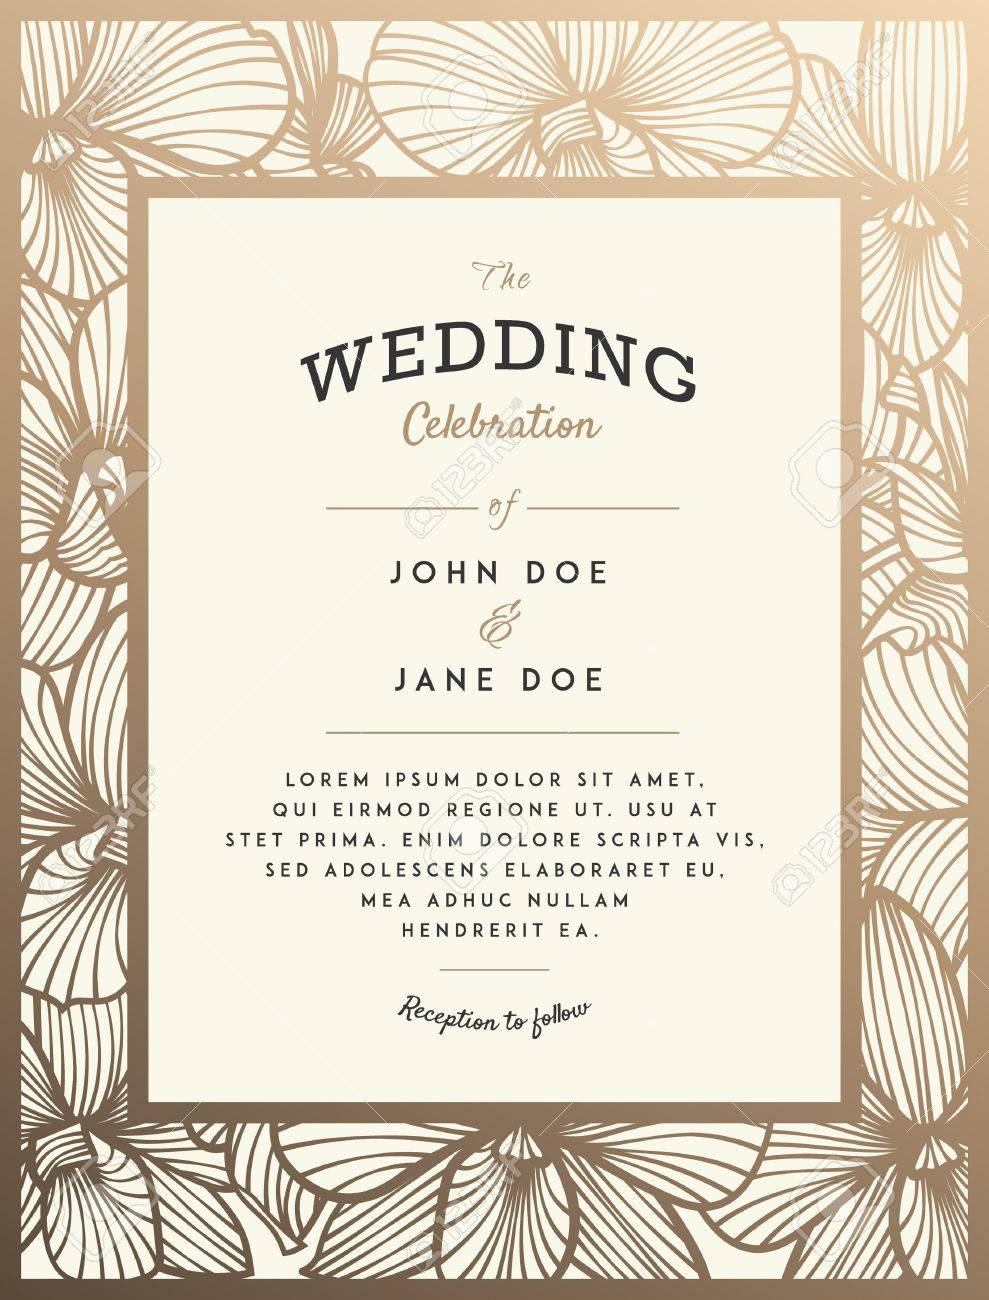 Elegant Wedding Invitation With Orchid Flowers. Perfect For Wedding ...